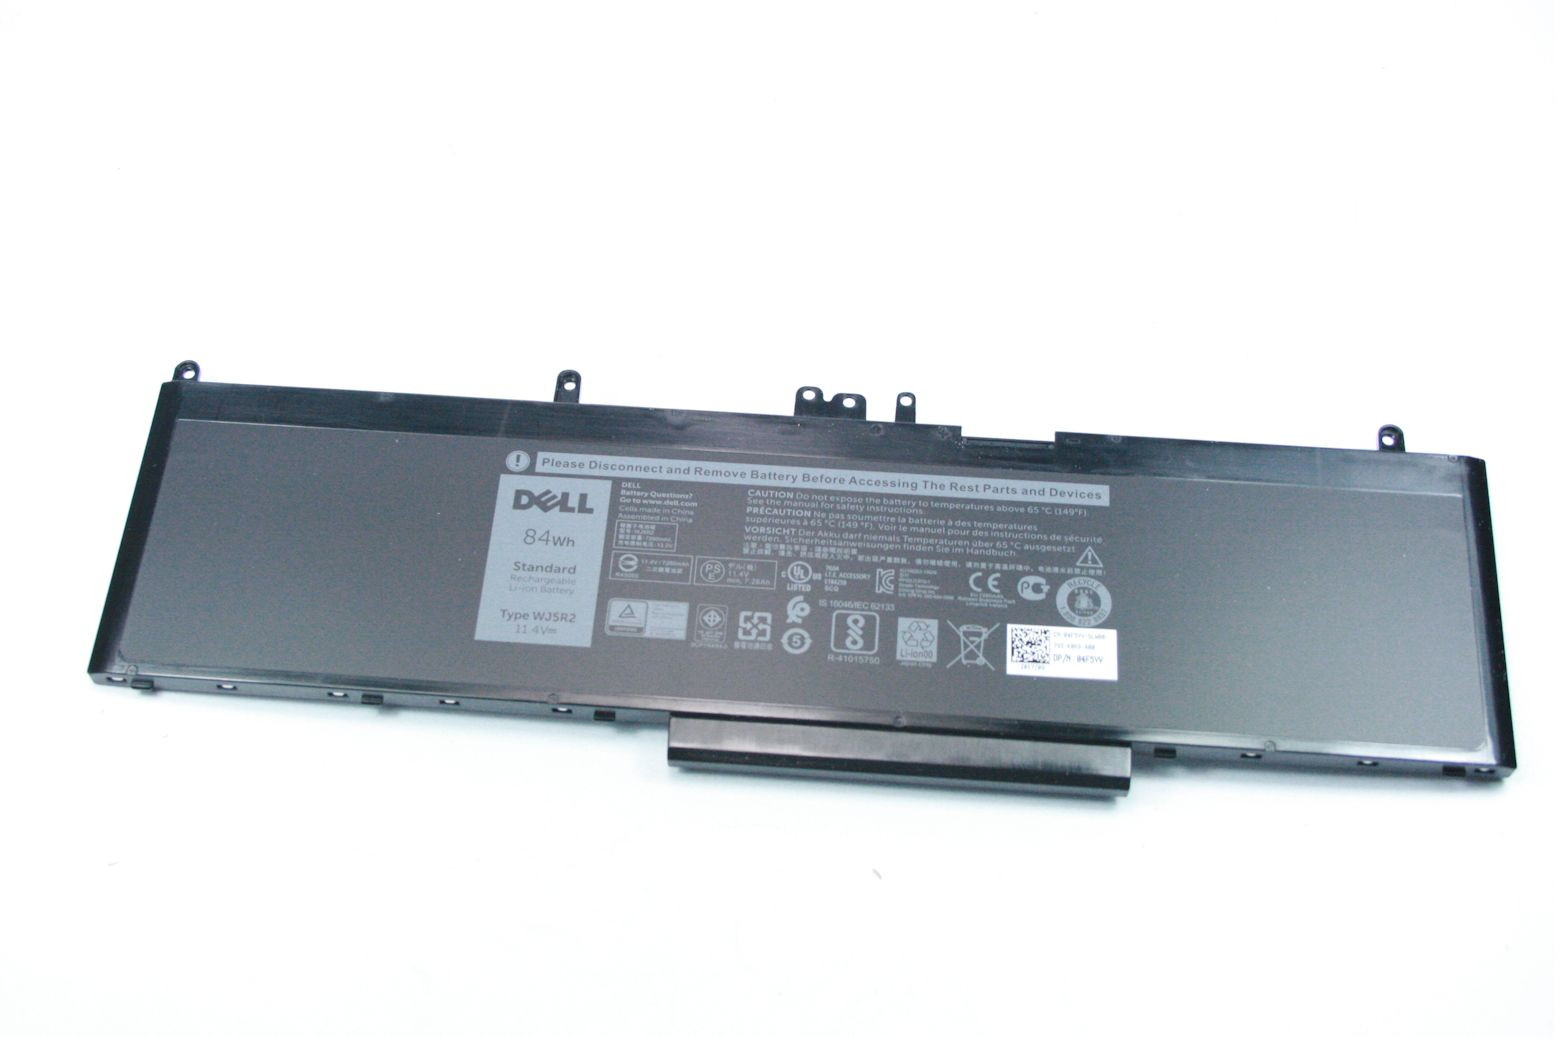 DELL Latitude E5570 Precision 15 3510 Akku Battery 84Wh WJ5R2